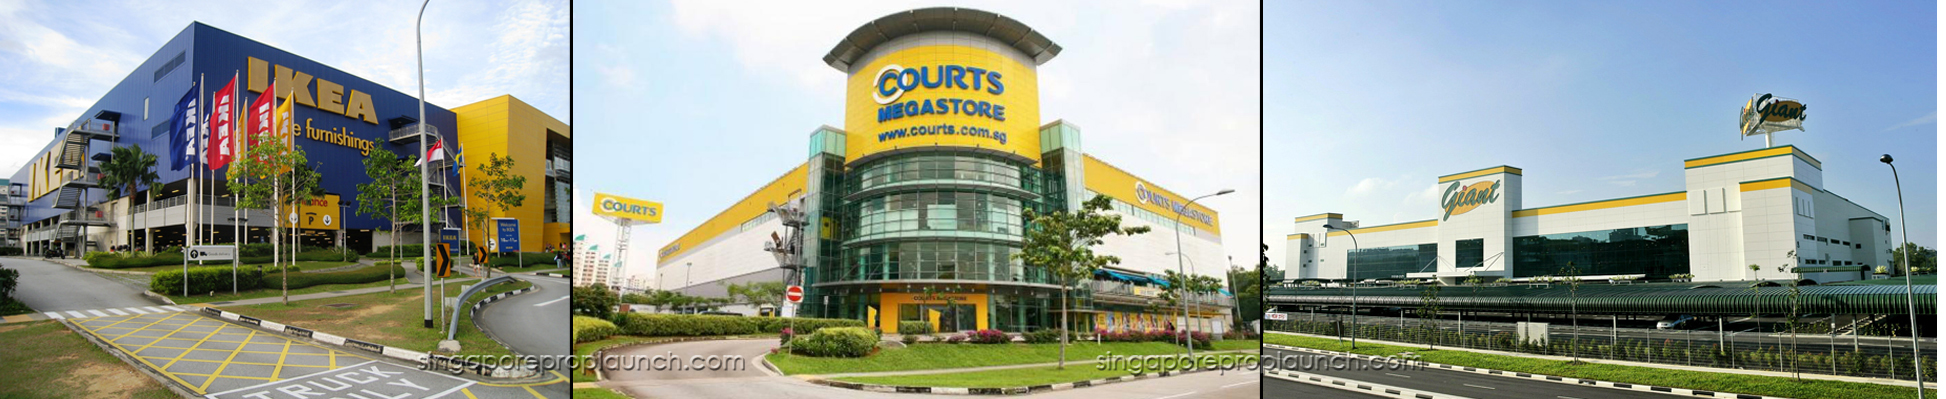 Ikea_Giant_Courts_Tampines_